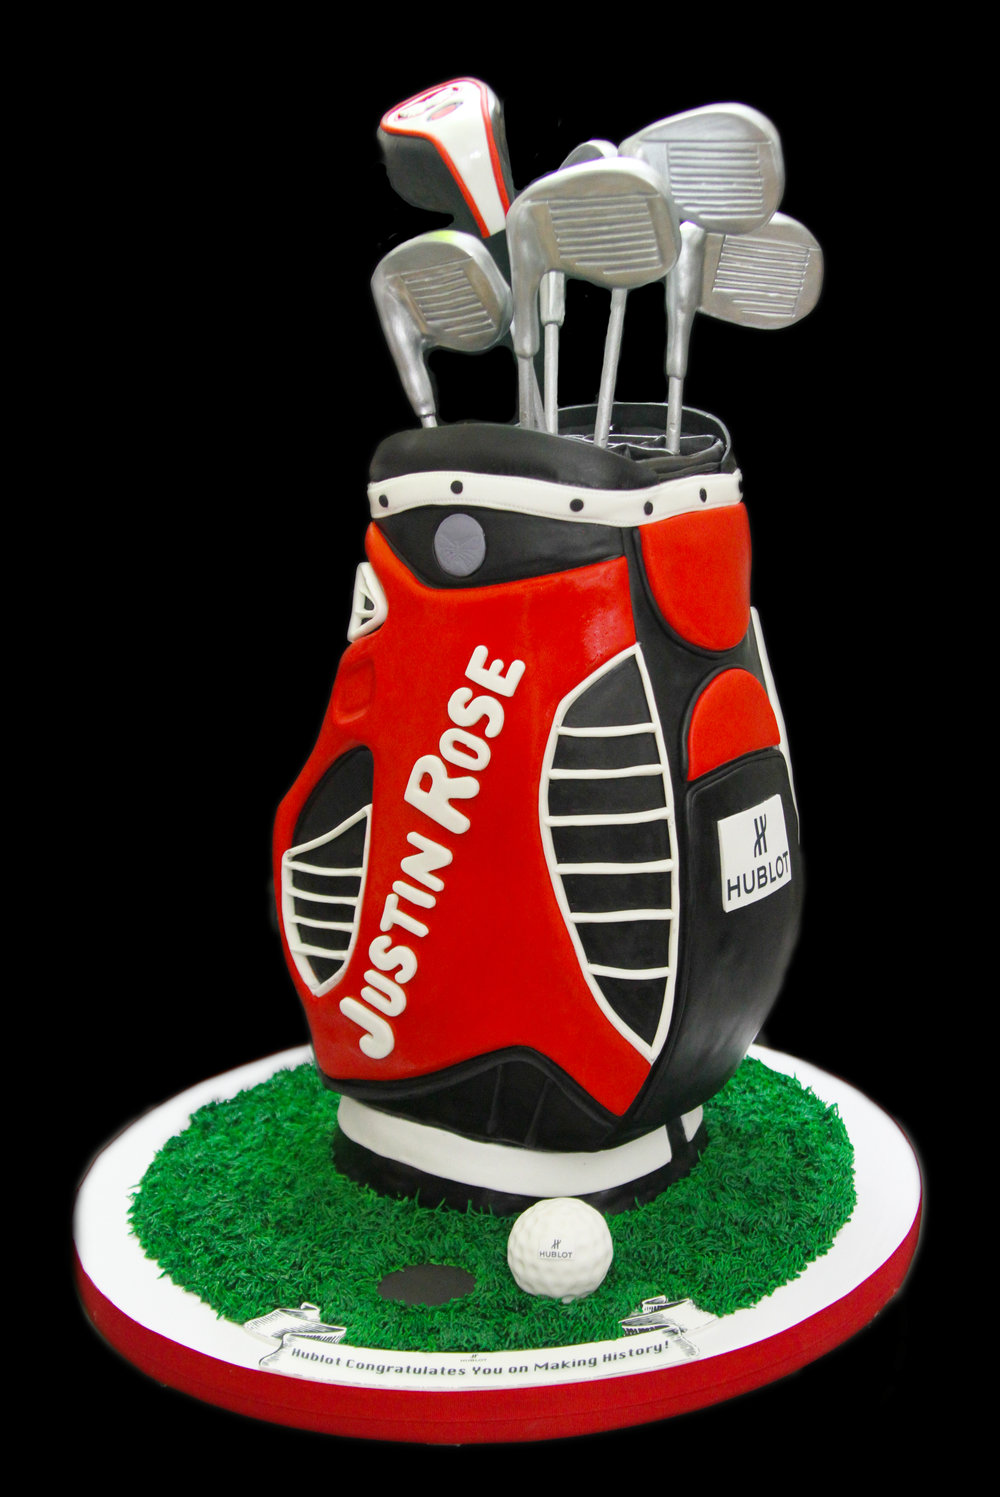 Justin Rose Golf Bag Cake.jpg